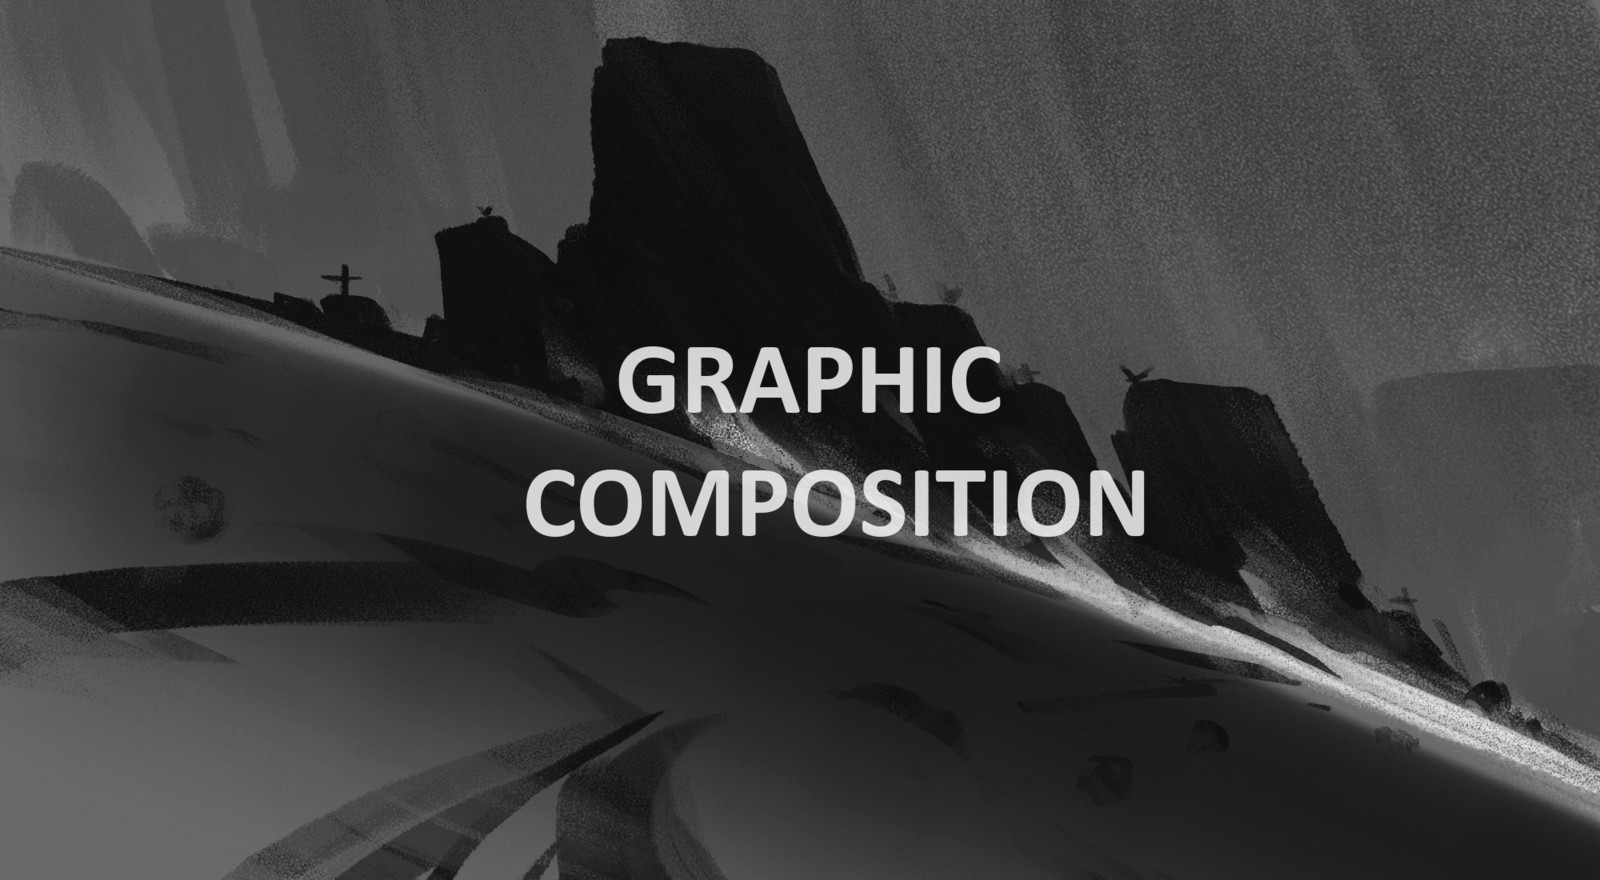 Graphic Composition